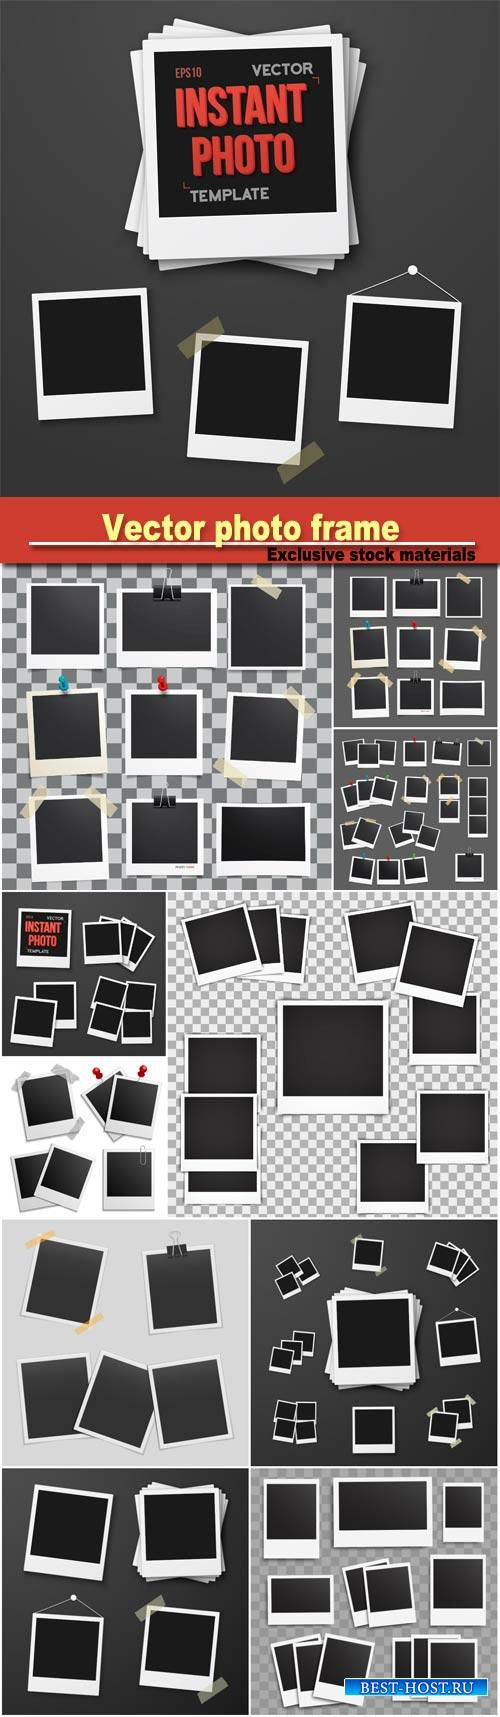 Vector photo set of realistic paper photograph, template photo design